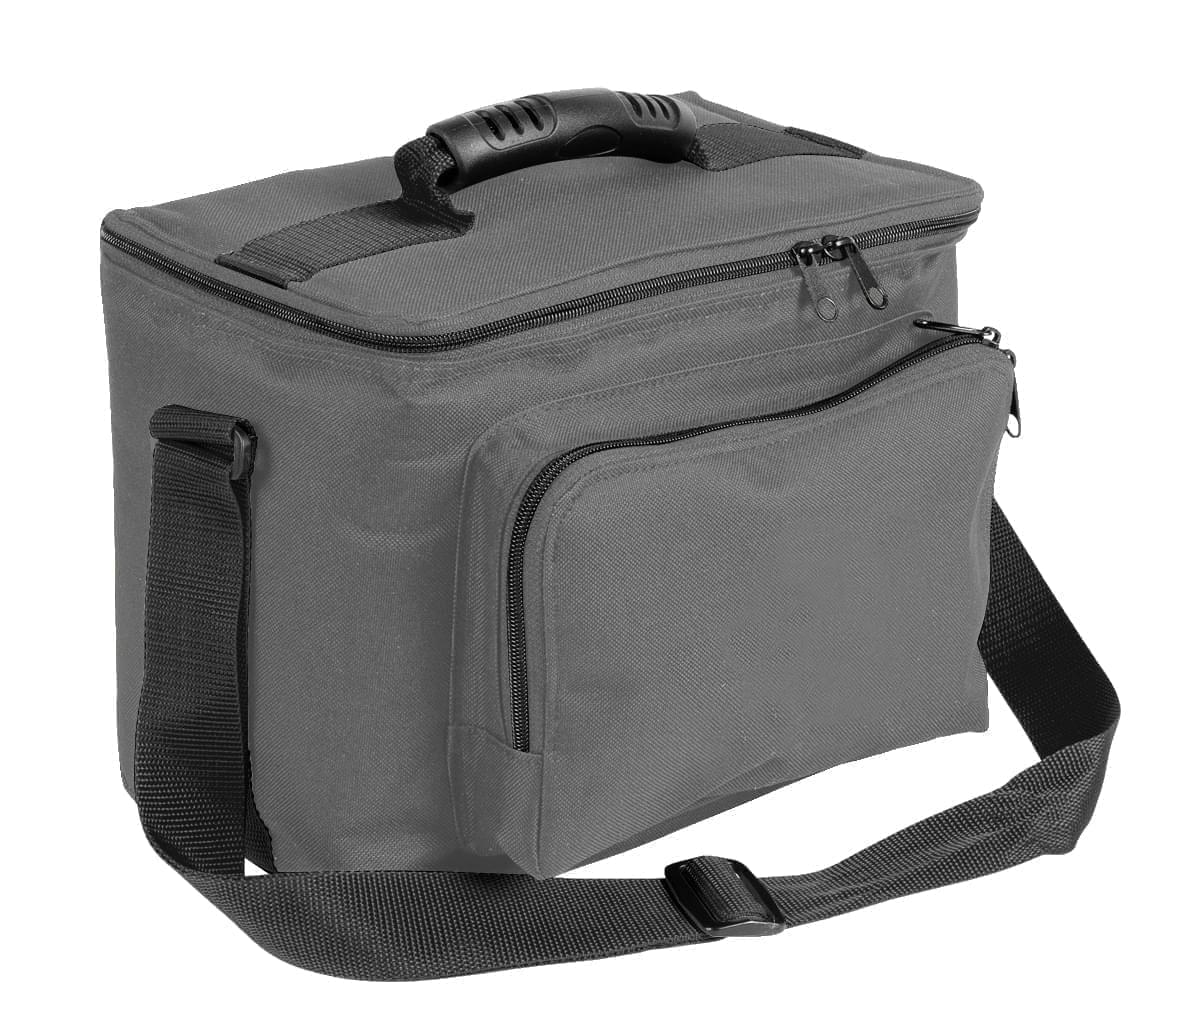 USA Made Nylon Poly Lunch Coolers, Graphite-Black, 11001161-ARR